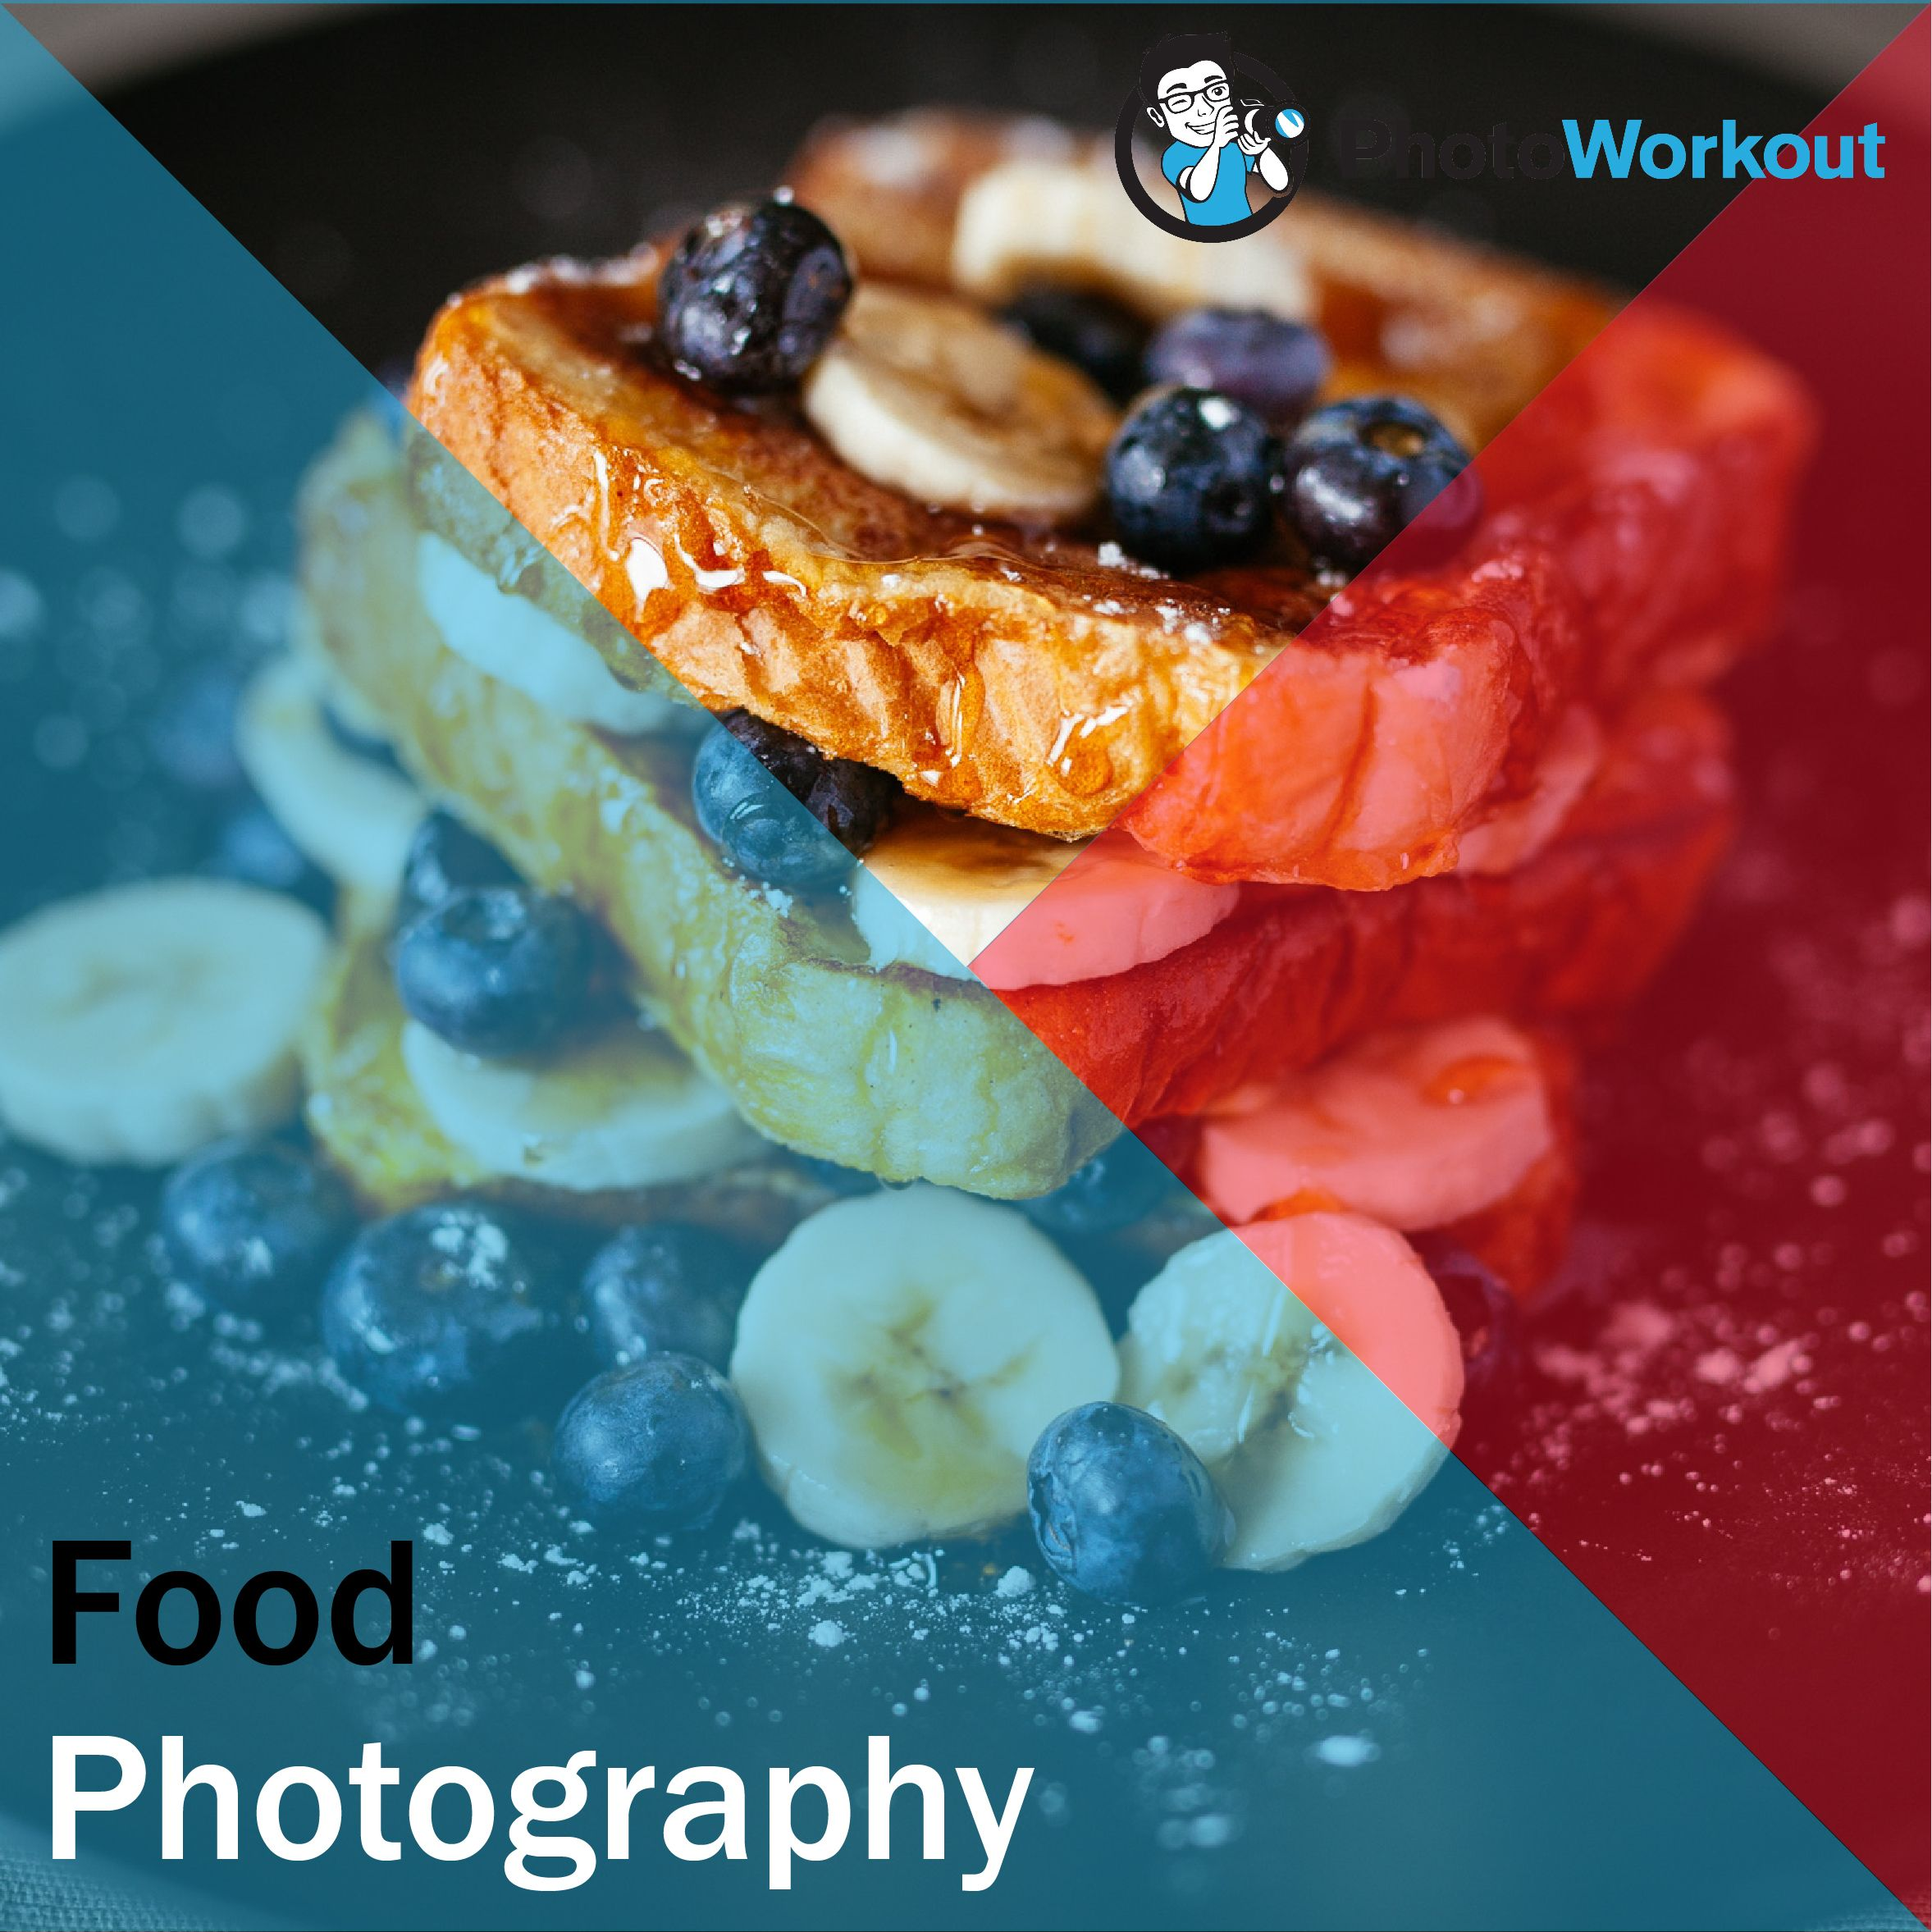 Food Photography Tips For Beginners: Food Photography Tips (6 Must Know Tips For Beginners